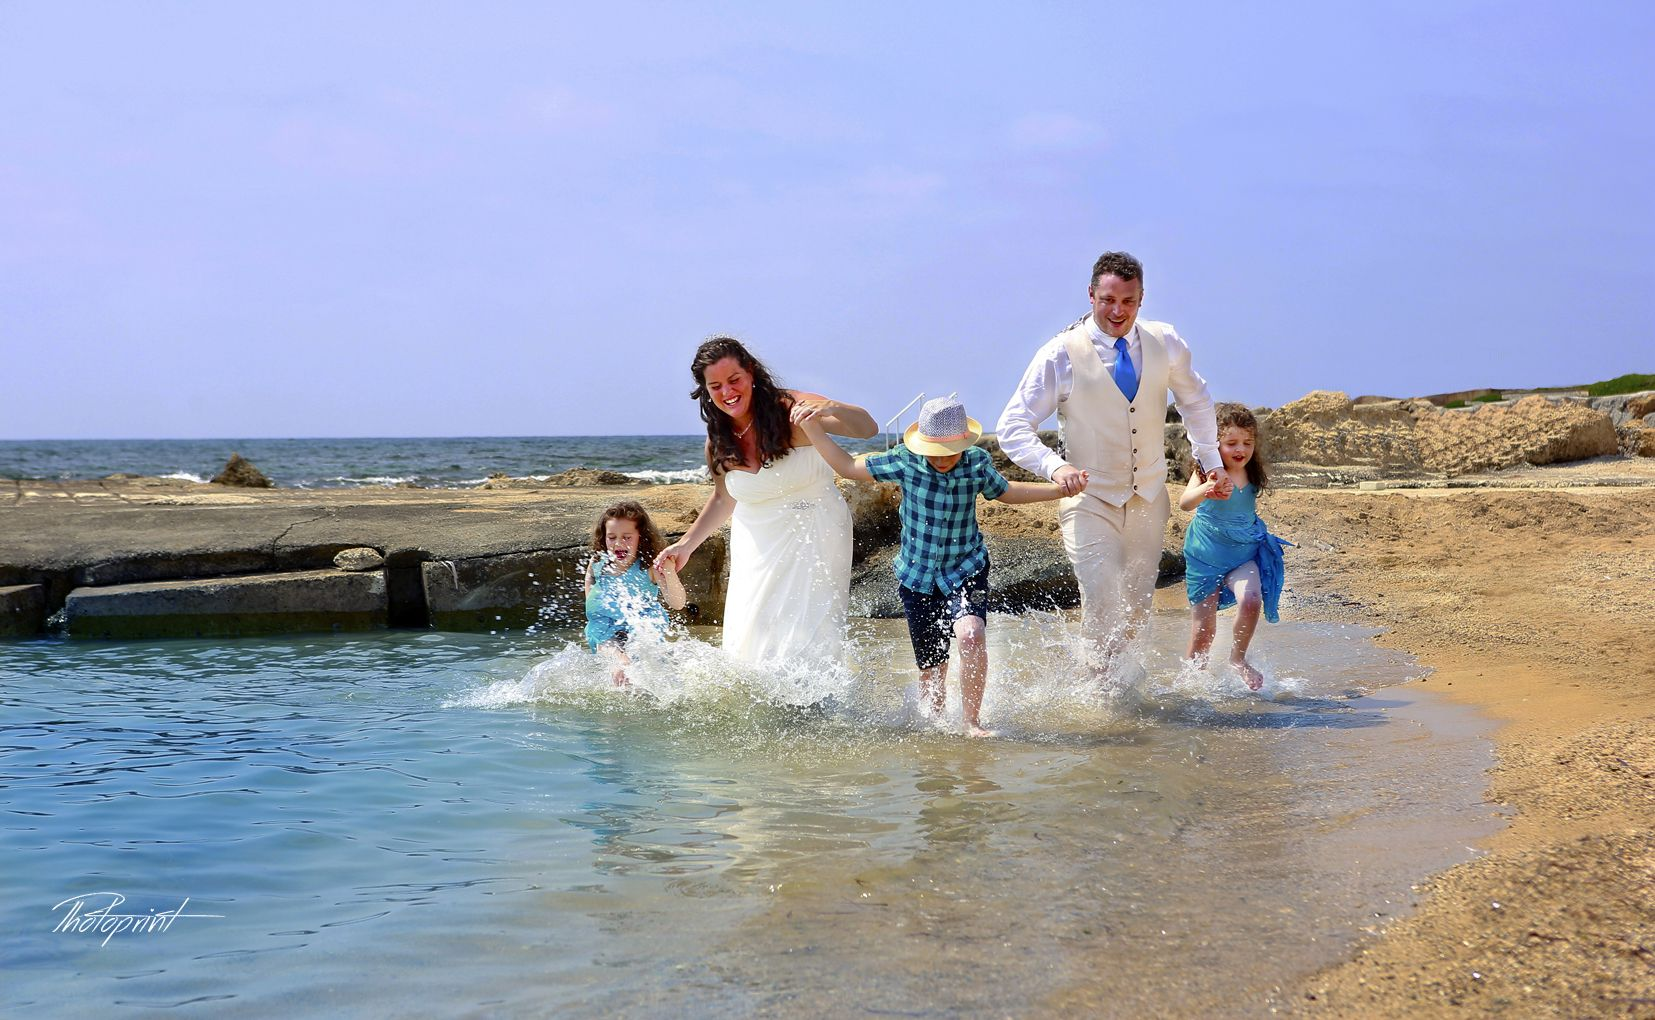 Cyprus Wedding Photographer Best Wedding Locations In Cyprus Beach Wedding Underwater Wedding Affordable Wedding Photography Wedding Photography Checklist